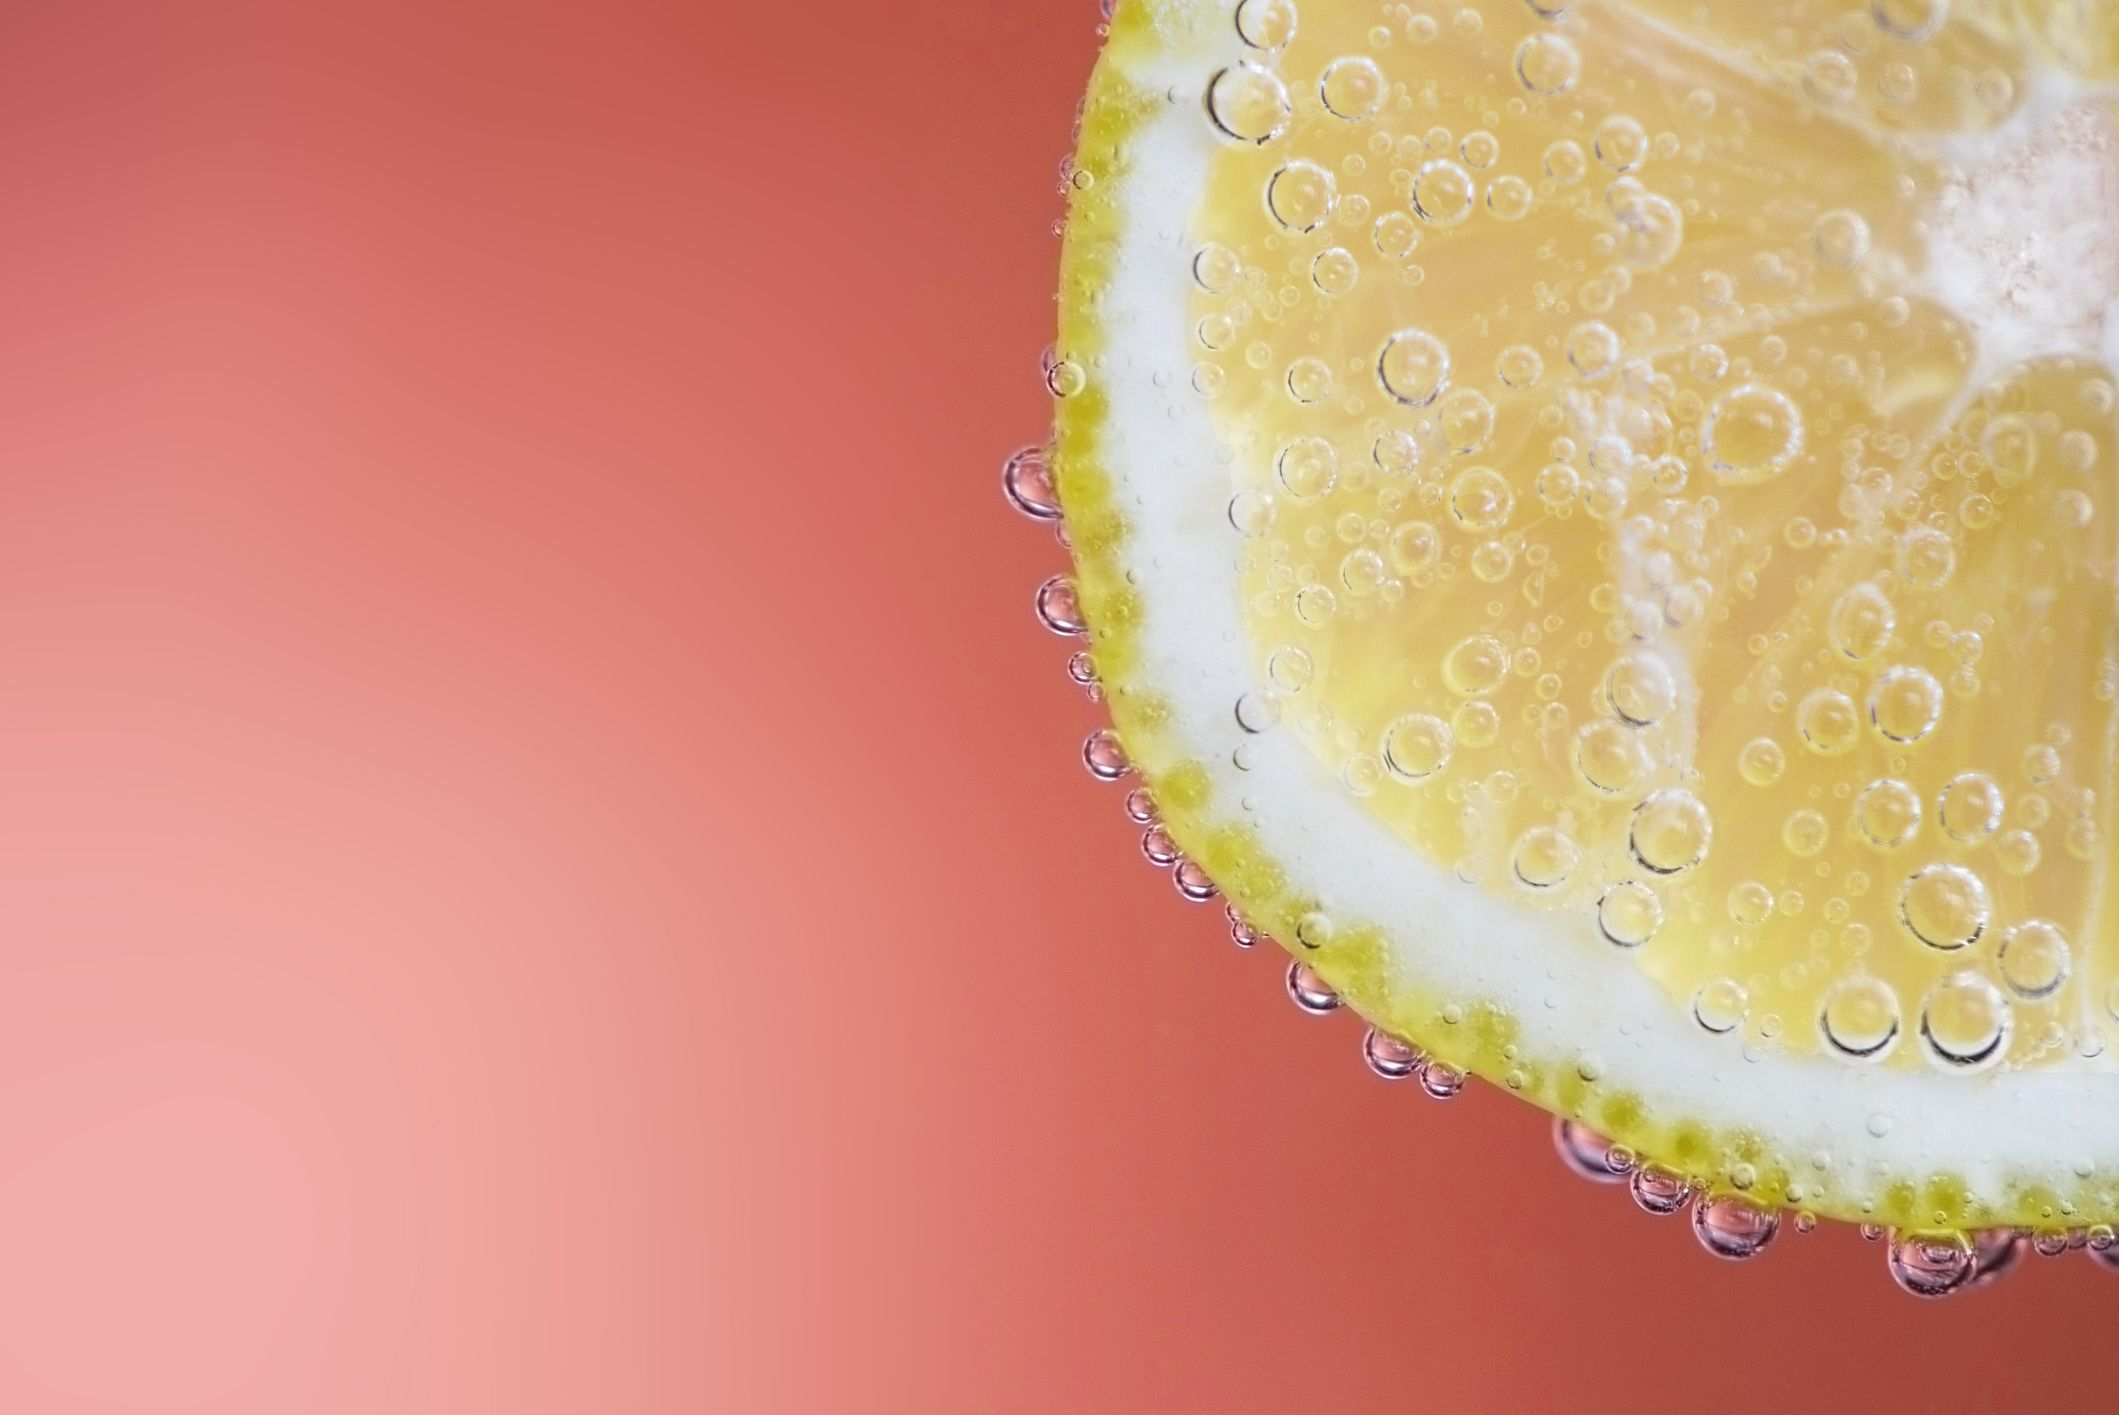 Can Drinking Lemon Water Really Help You Lose Weight—Or Is That A Myth?